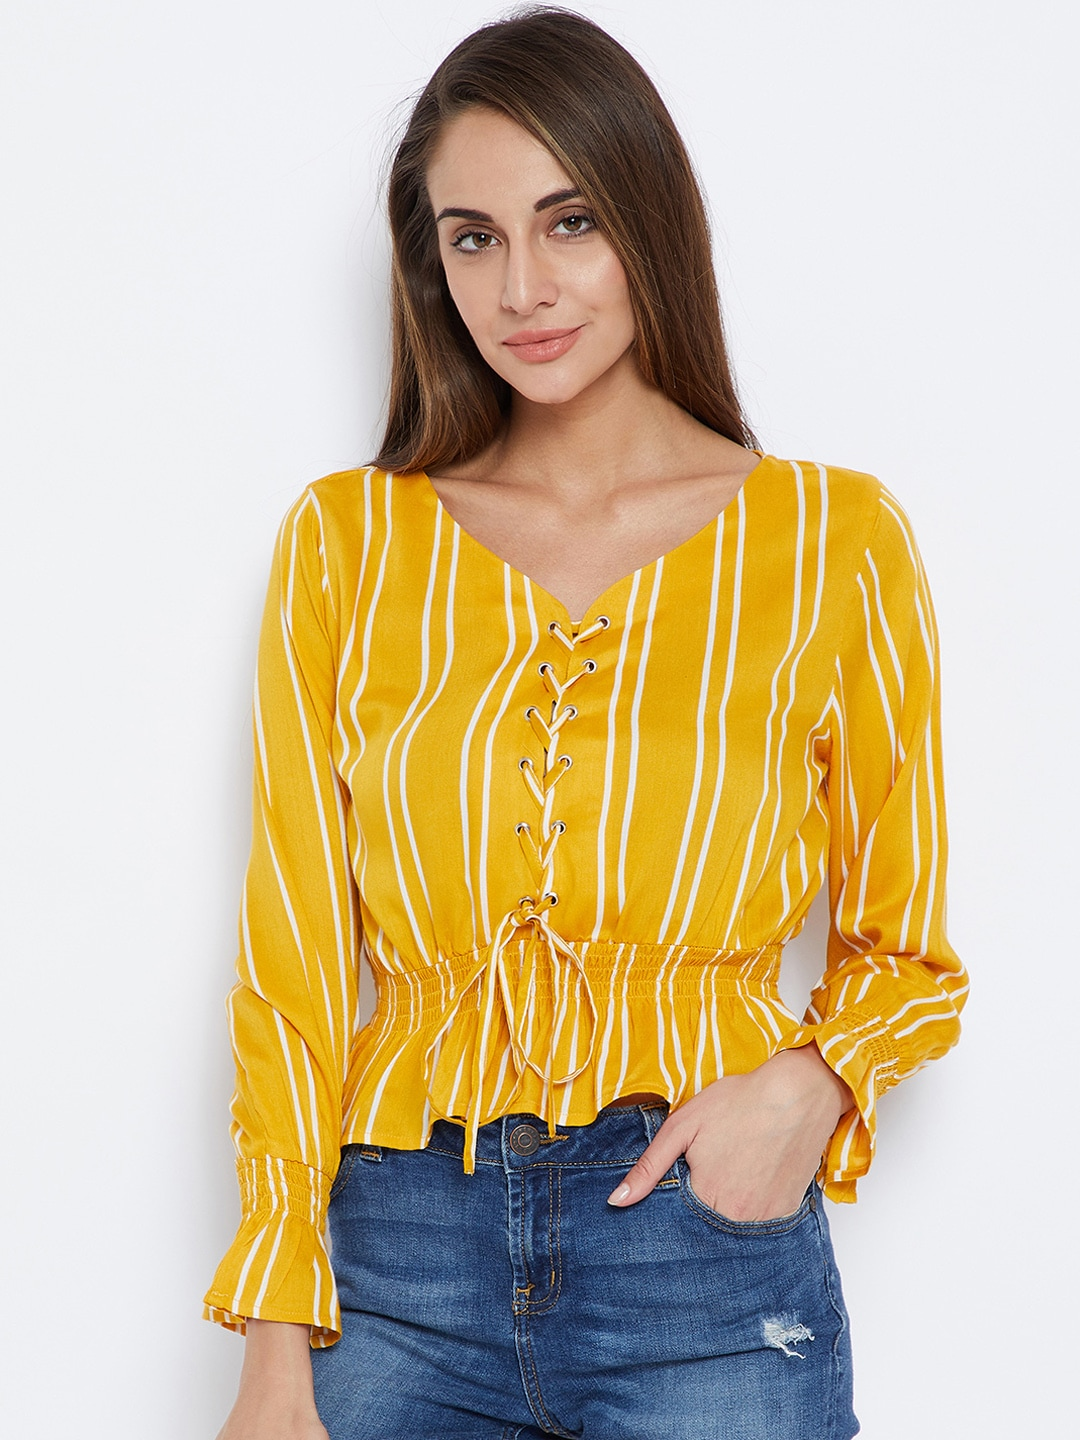 ef5597f1701735 Crop Tops - Buy Midriff Crop Tops Online for Women in India